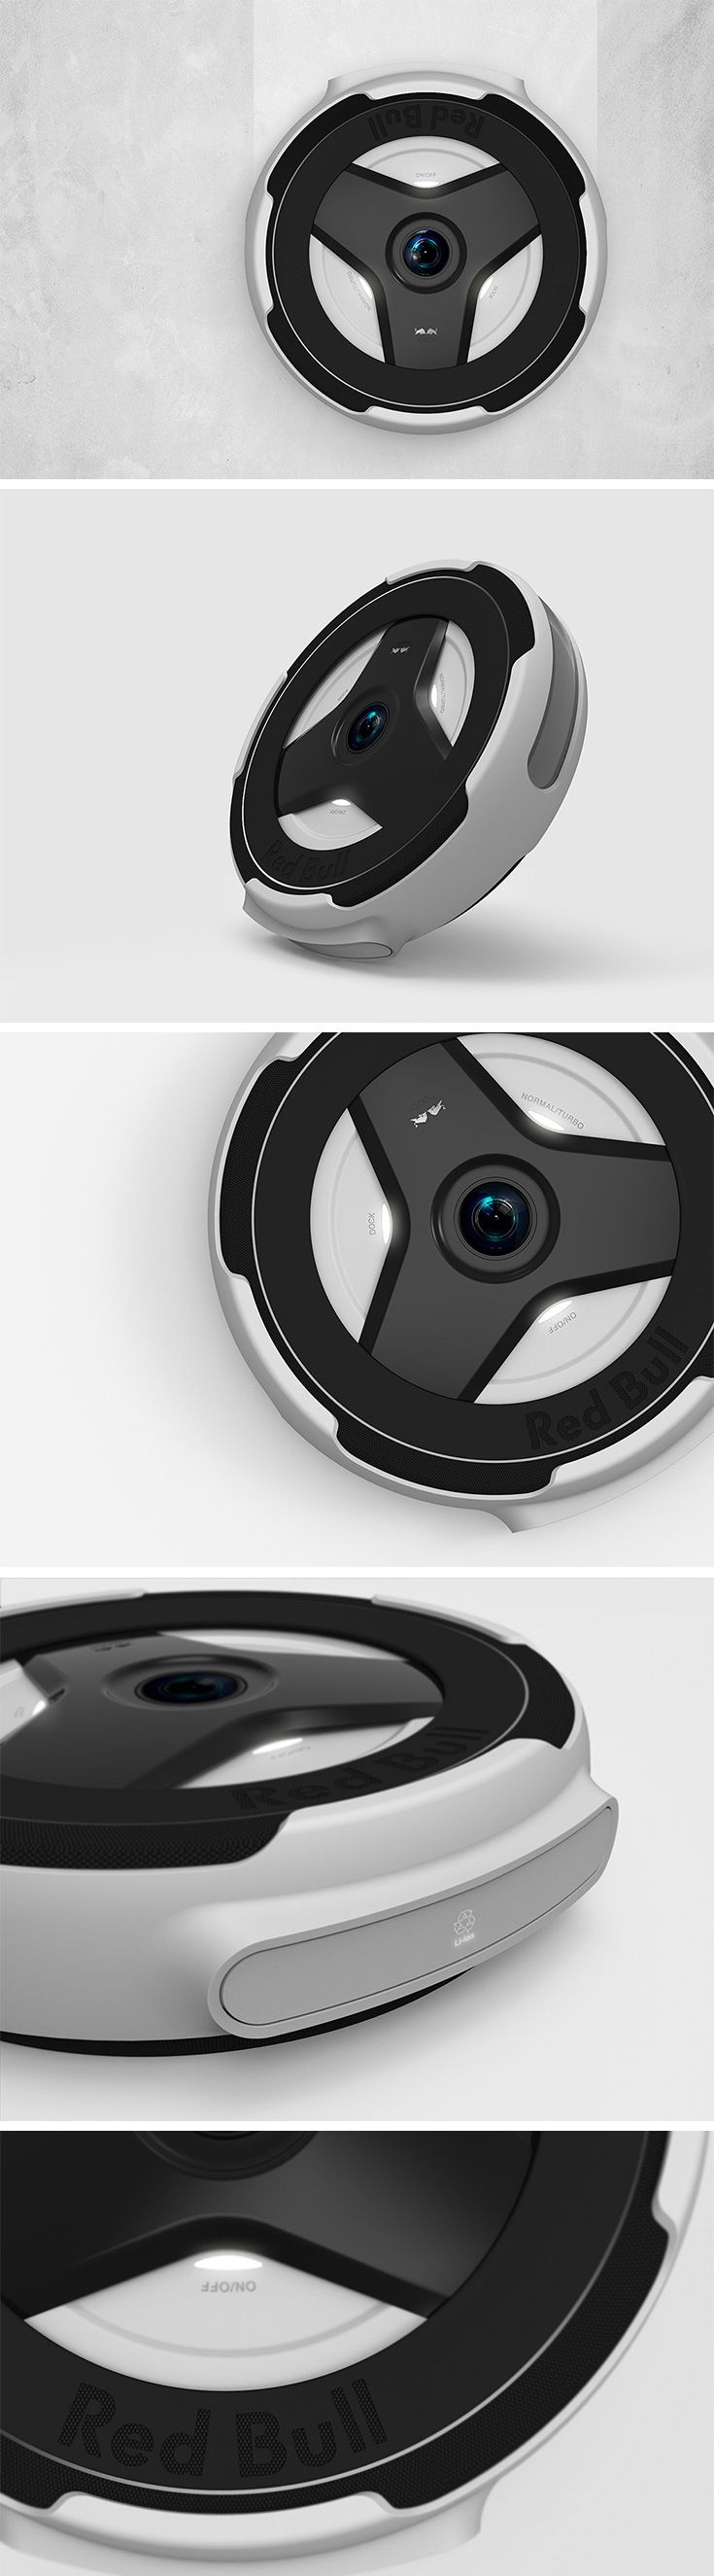 The Red Bull Robot Cleaner applies the brand's simultaneously sporty and minimalist aesthetic to an autonomous robo-vacuum for an all new tough look and easy-to-use functionality.